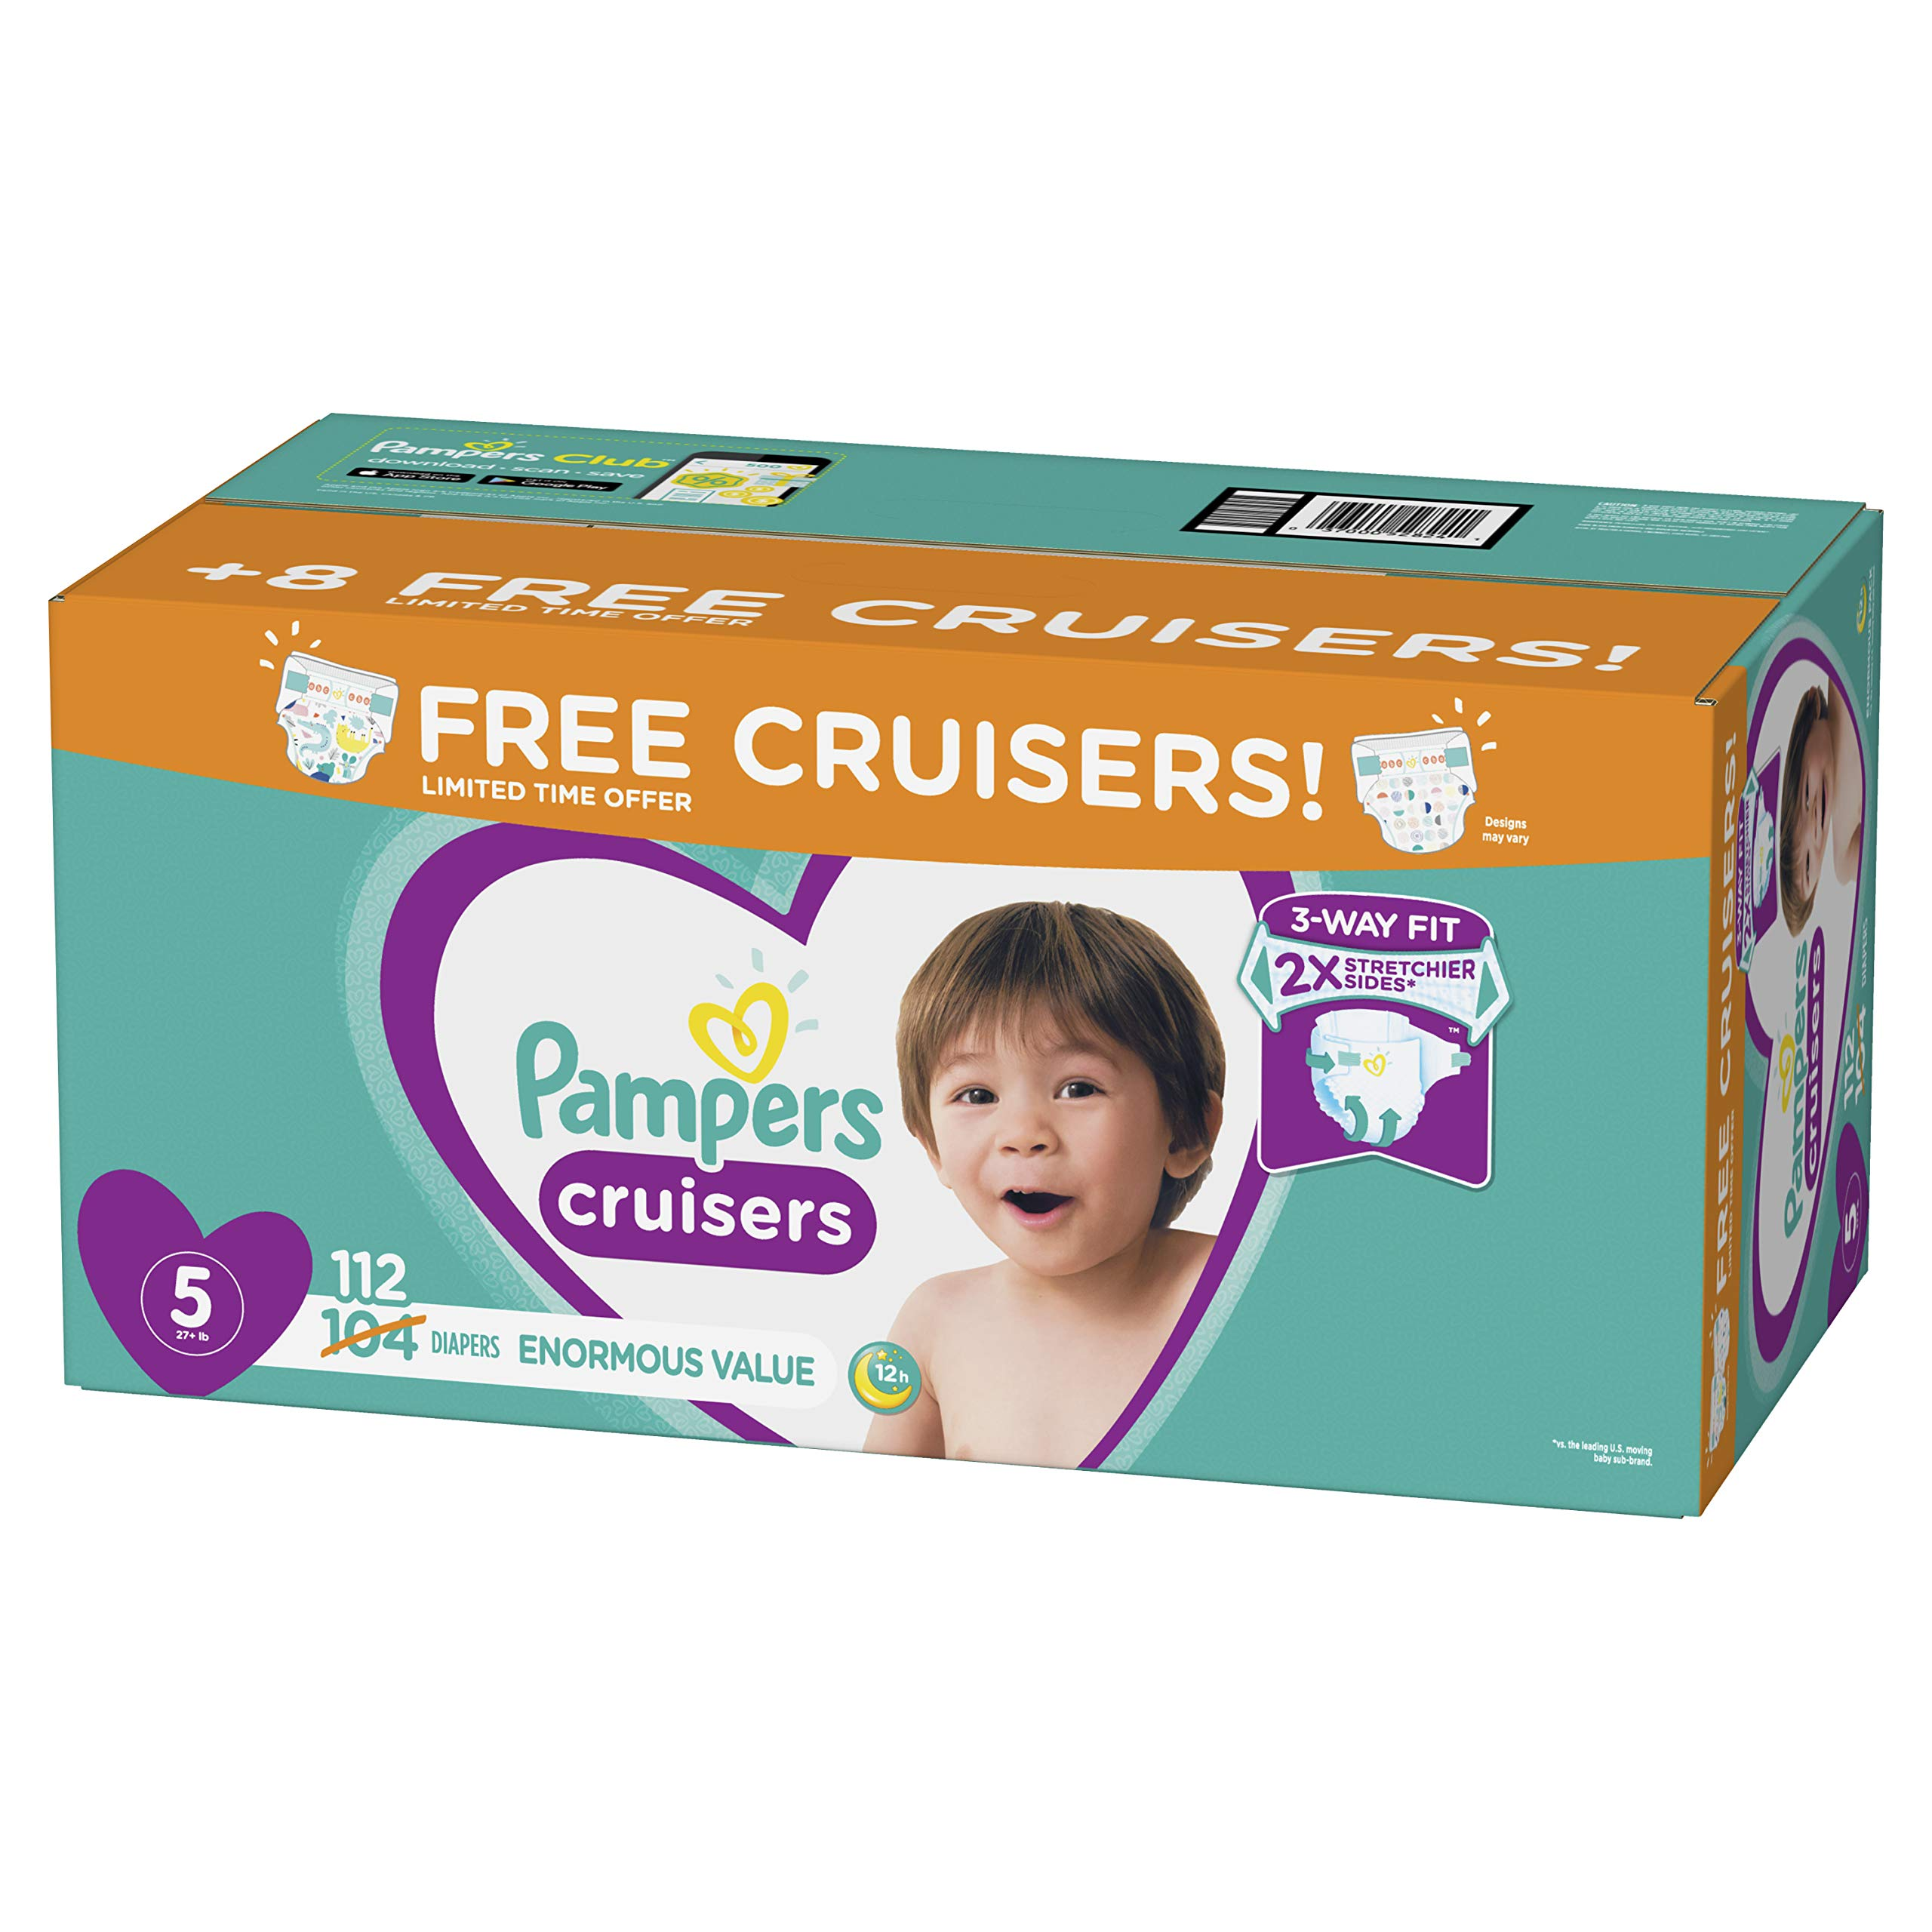 Diapers Size 5, 112 Count - Pampers Cruisers Disposable Baby Diapers, Enormous Pack, Plus Bonus Diapers by Pampers